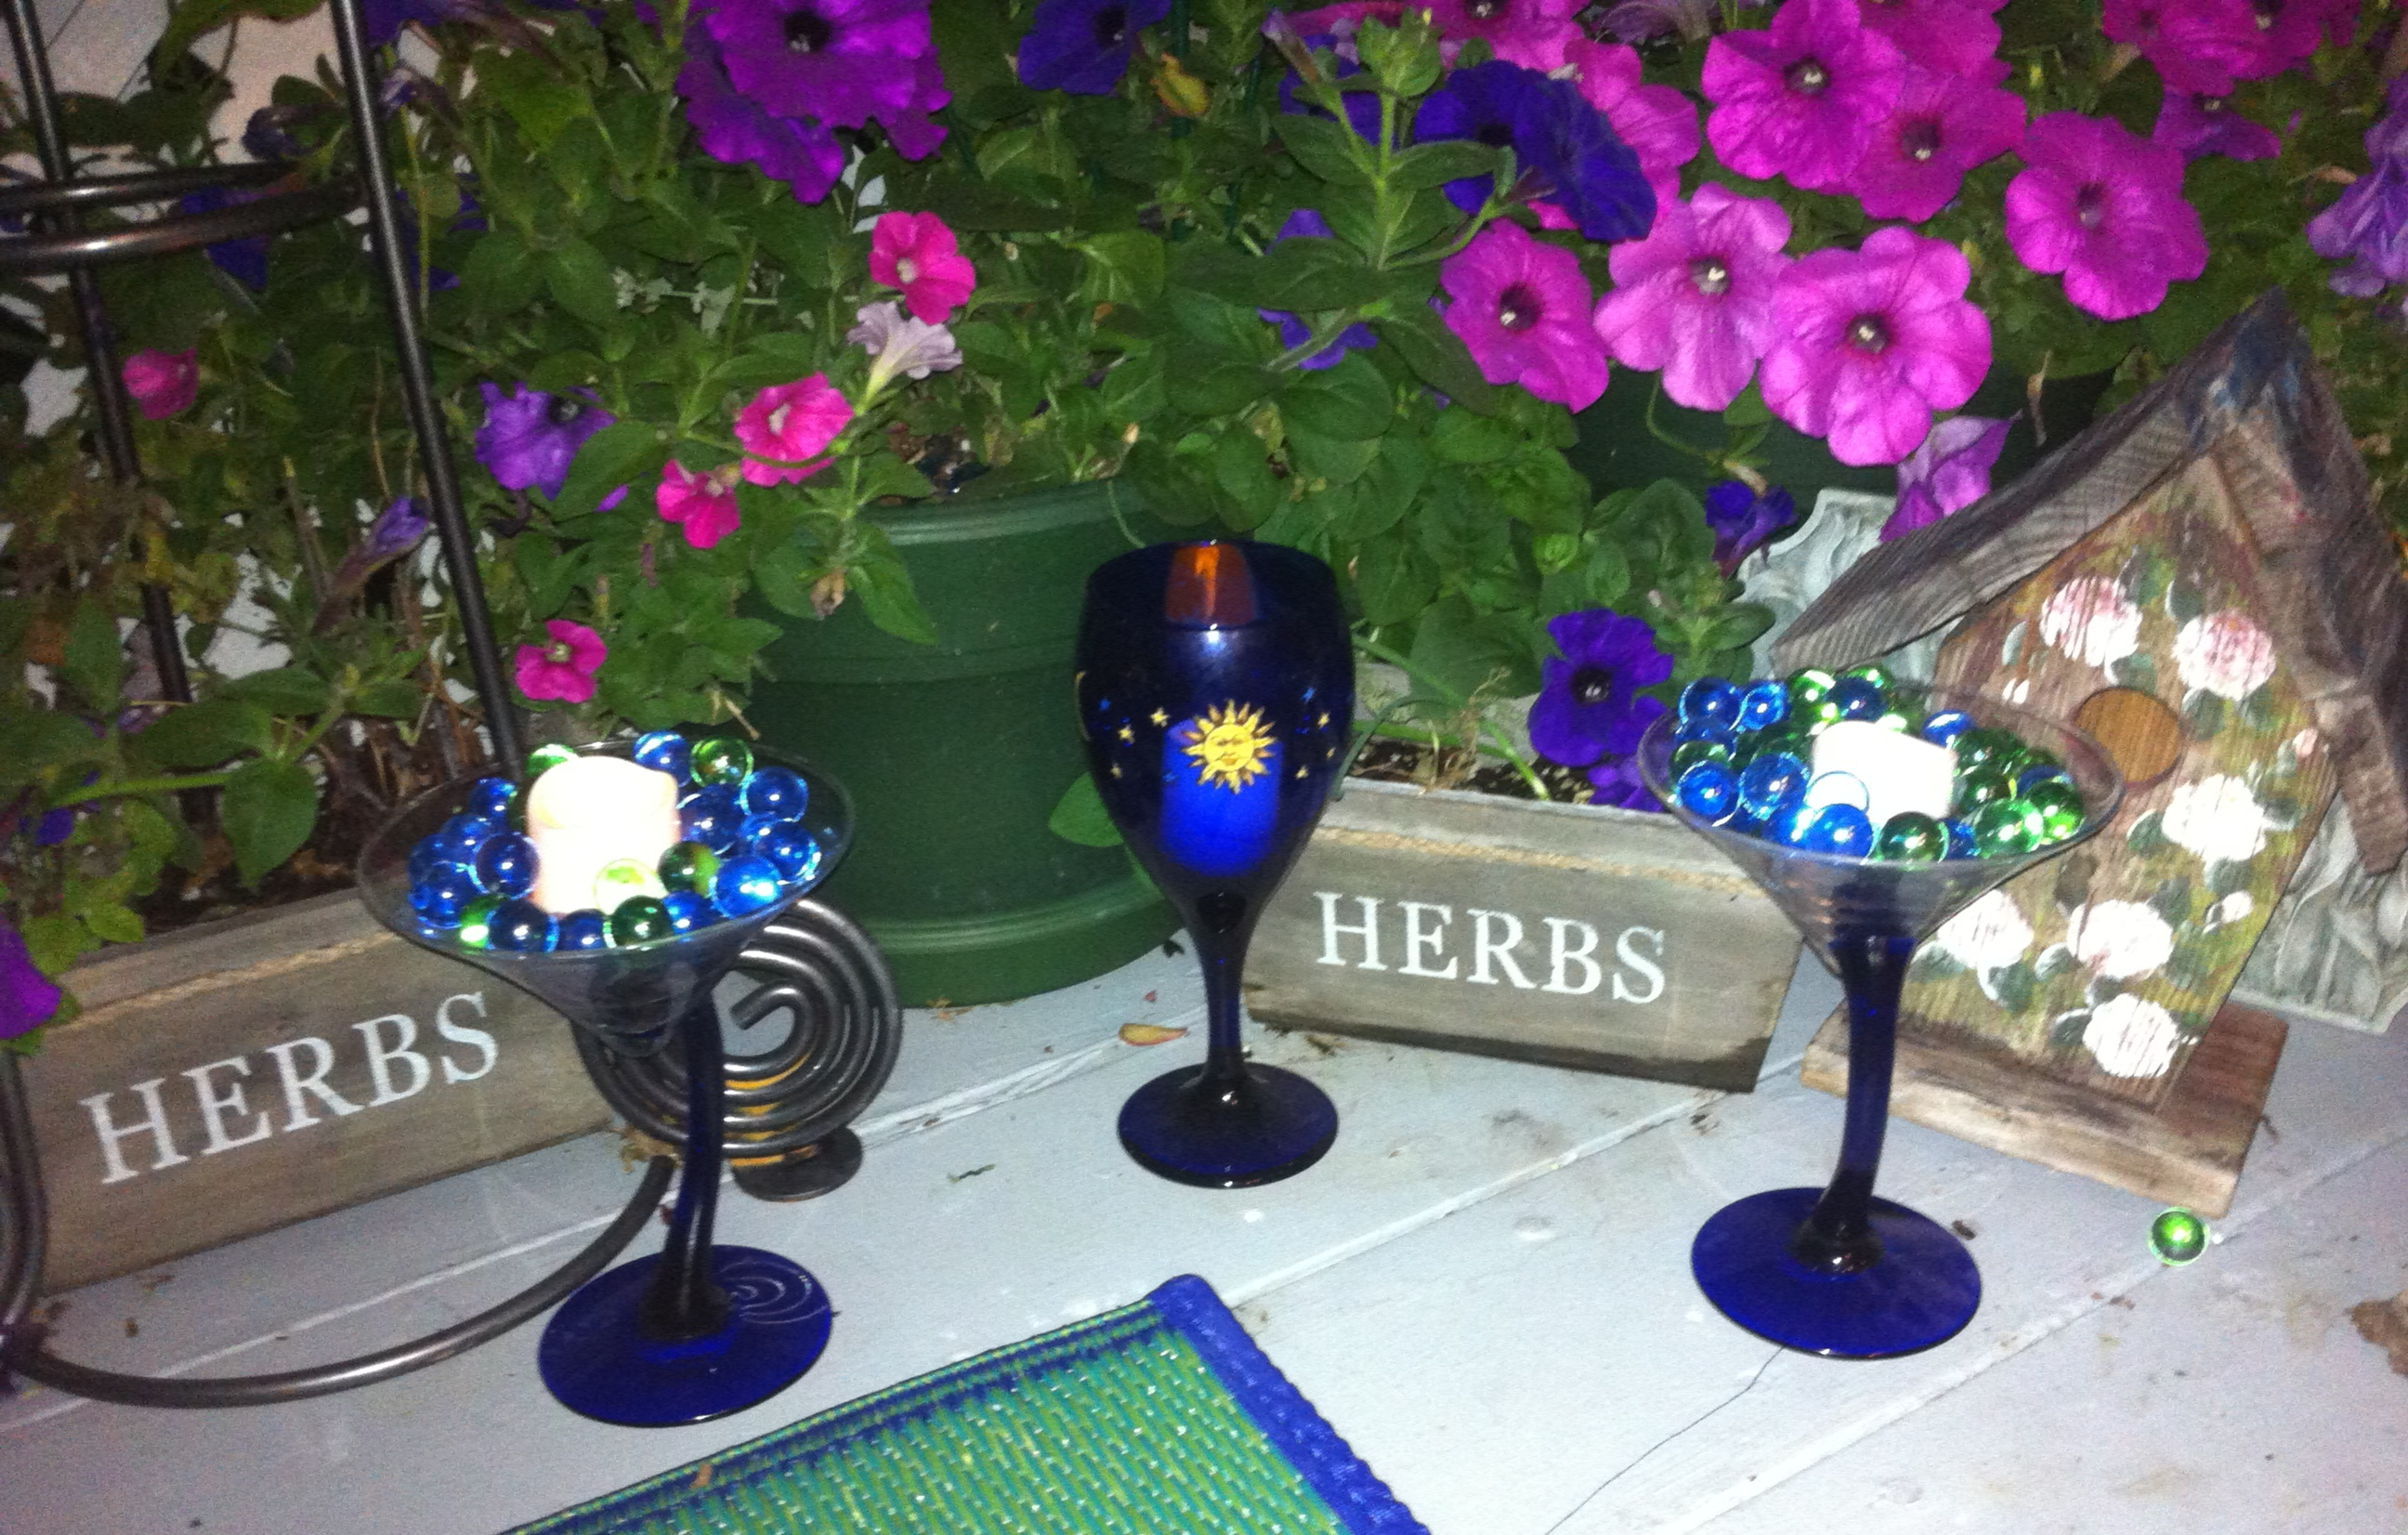 Repurposed Martini and Wine Glasses 8 DIY Patio Accents #trashtotreasure #patio #diy #yard #garden #up-cycle #re-purpose #patio_table #plant_stand #bird_bath #herb_garden #wineglass #martiniglass #candles